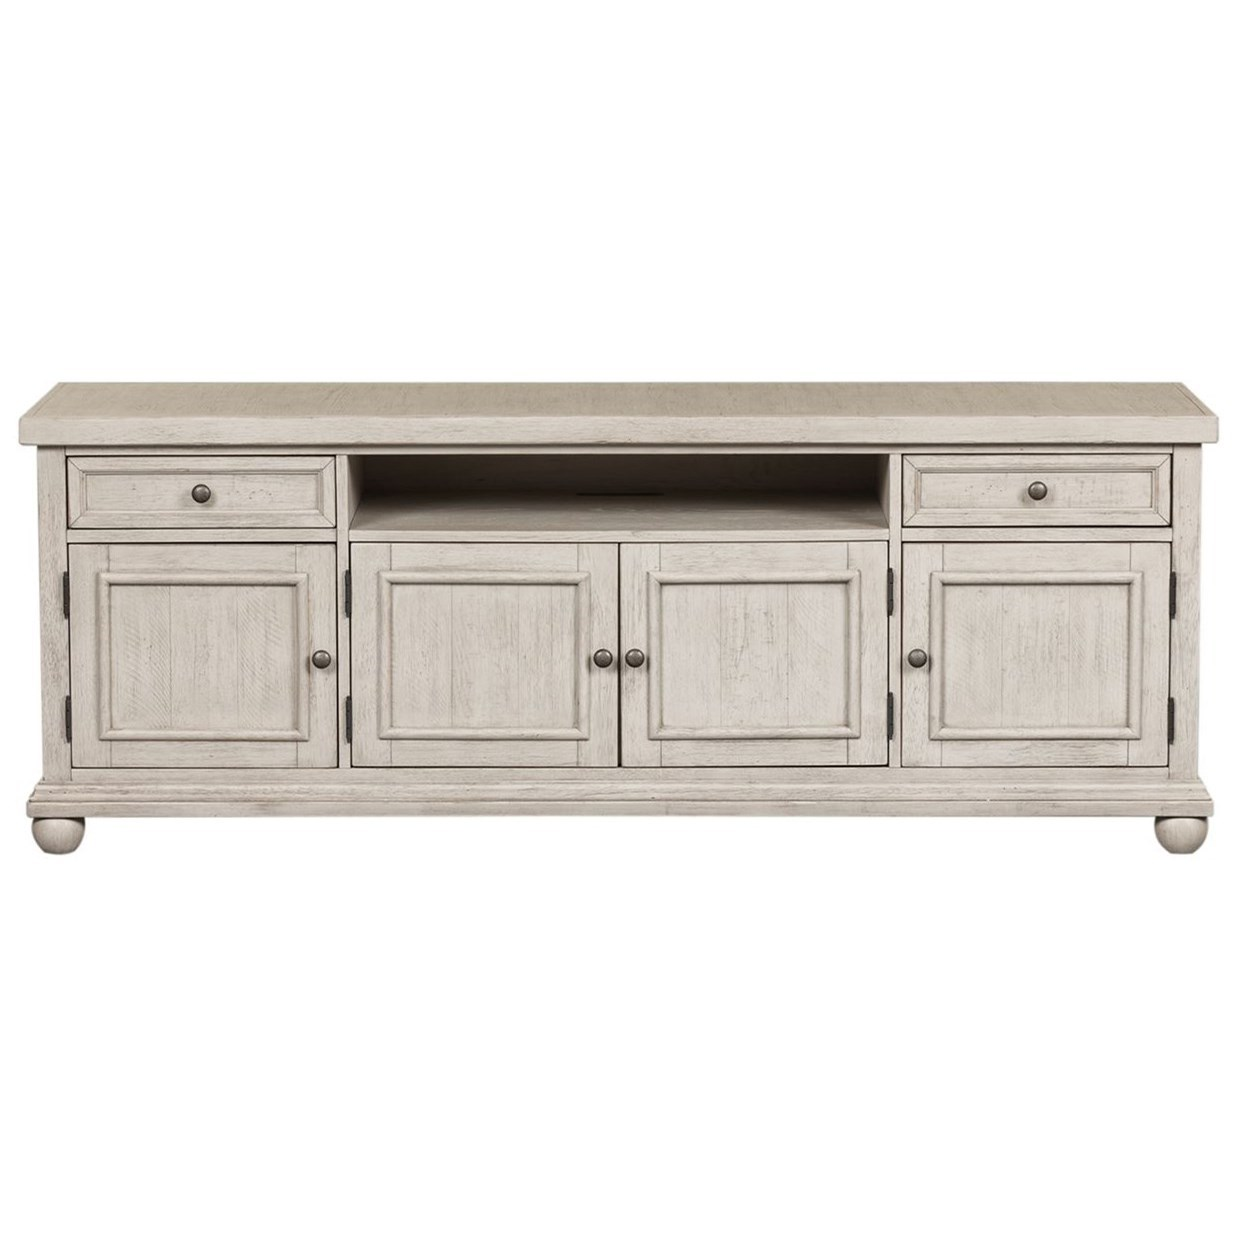 "Harvest Home 75"" TV Console by Liberty Furniture at Suburban Furniture"